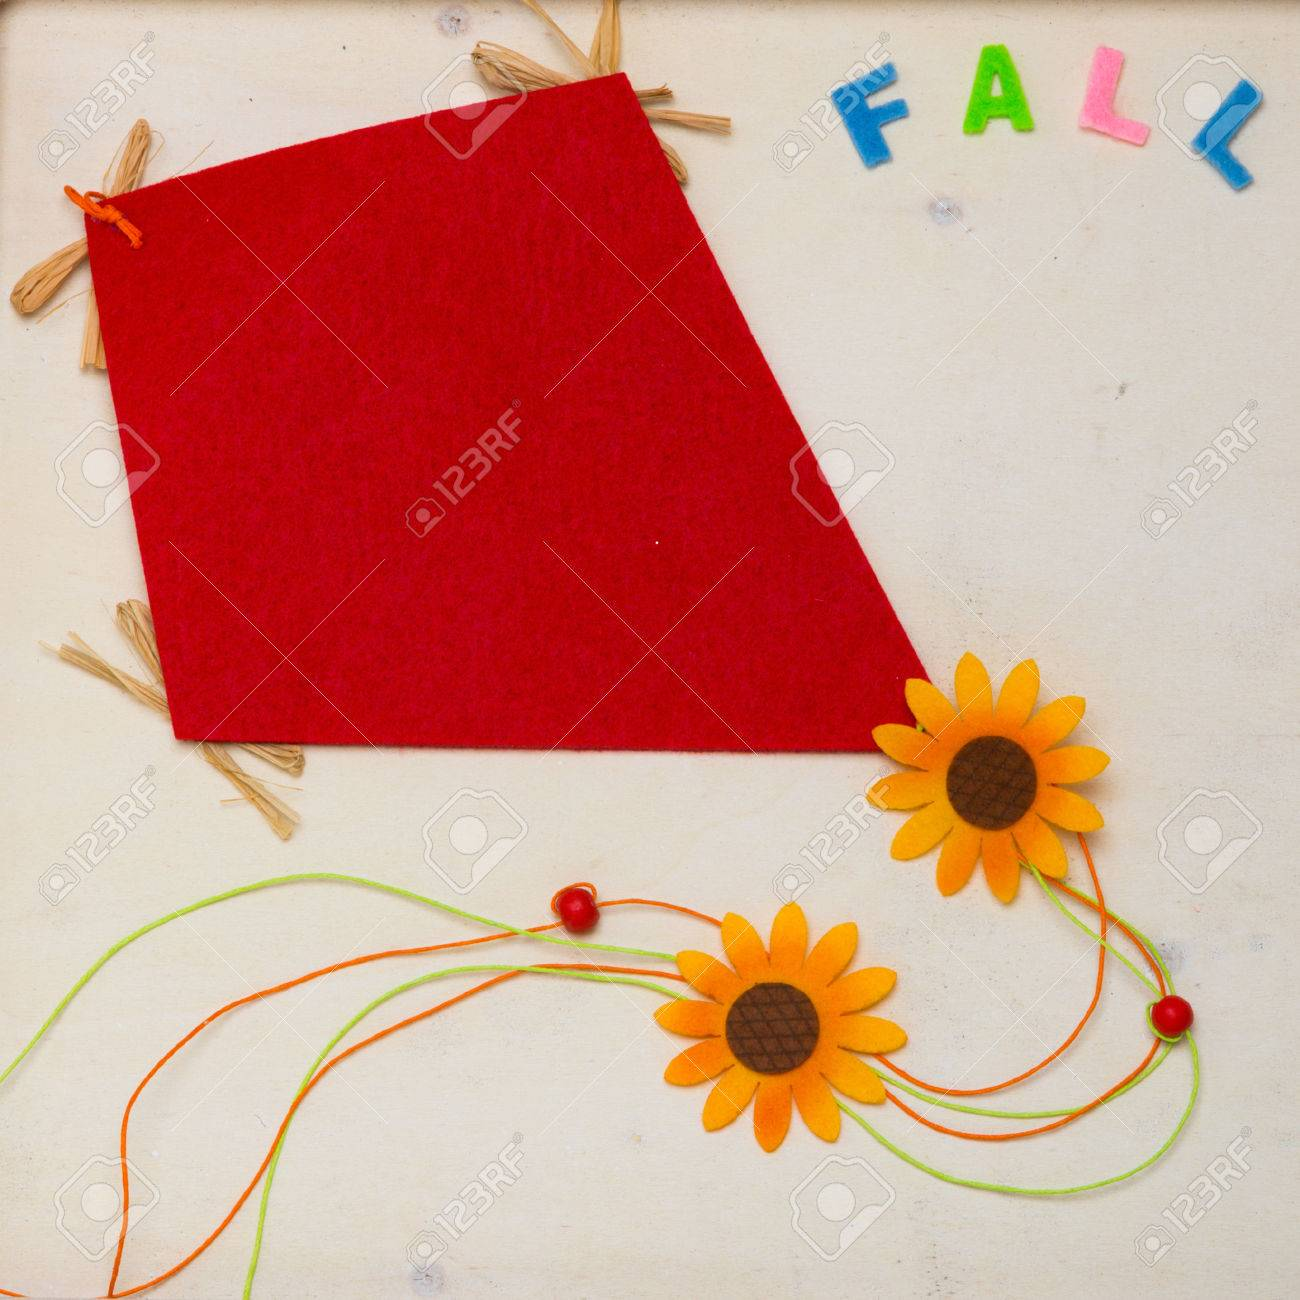 Homemade Paper Kite In White Wooden Picture Frame Stock Photo